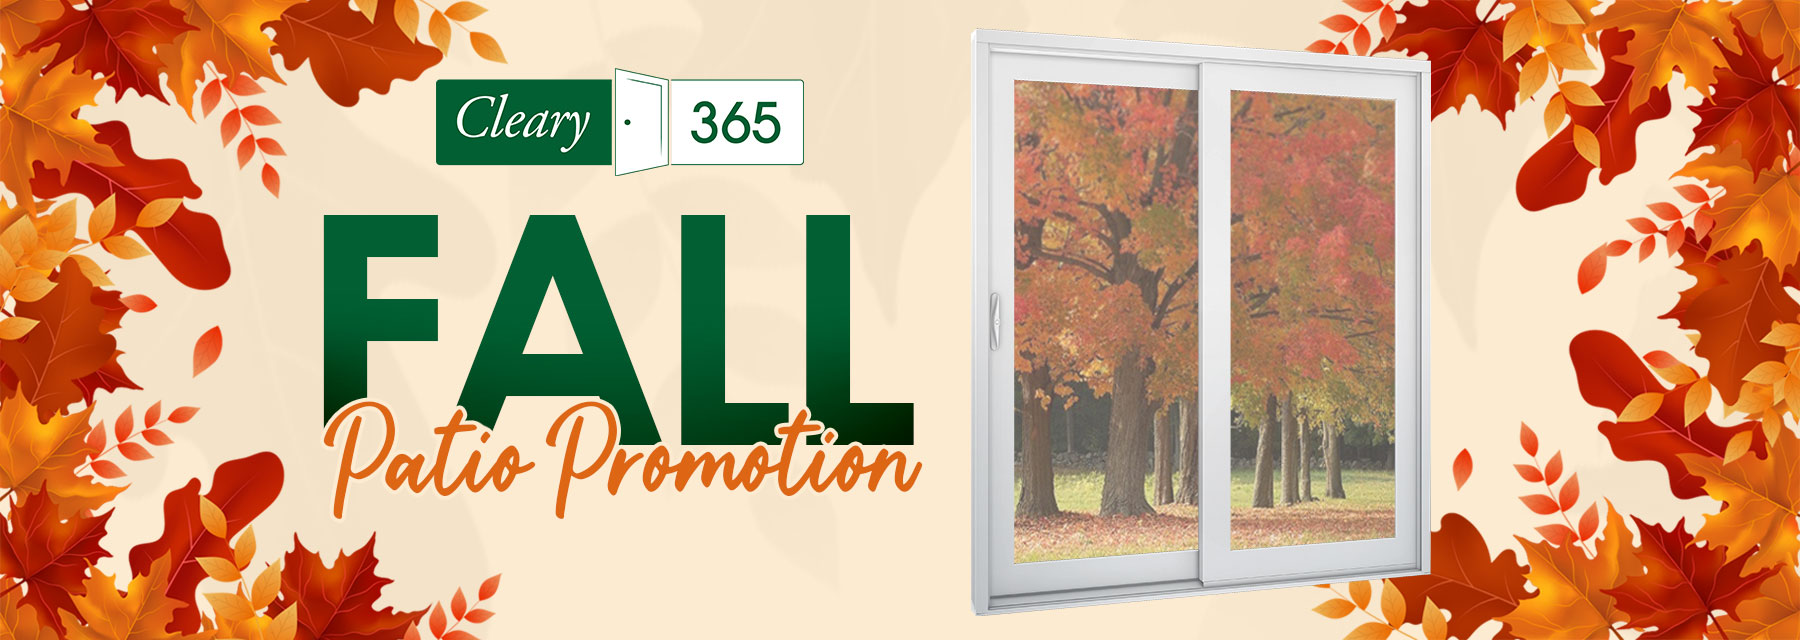 Cleary 2020 Fall Patio Promotion